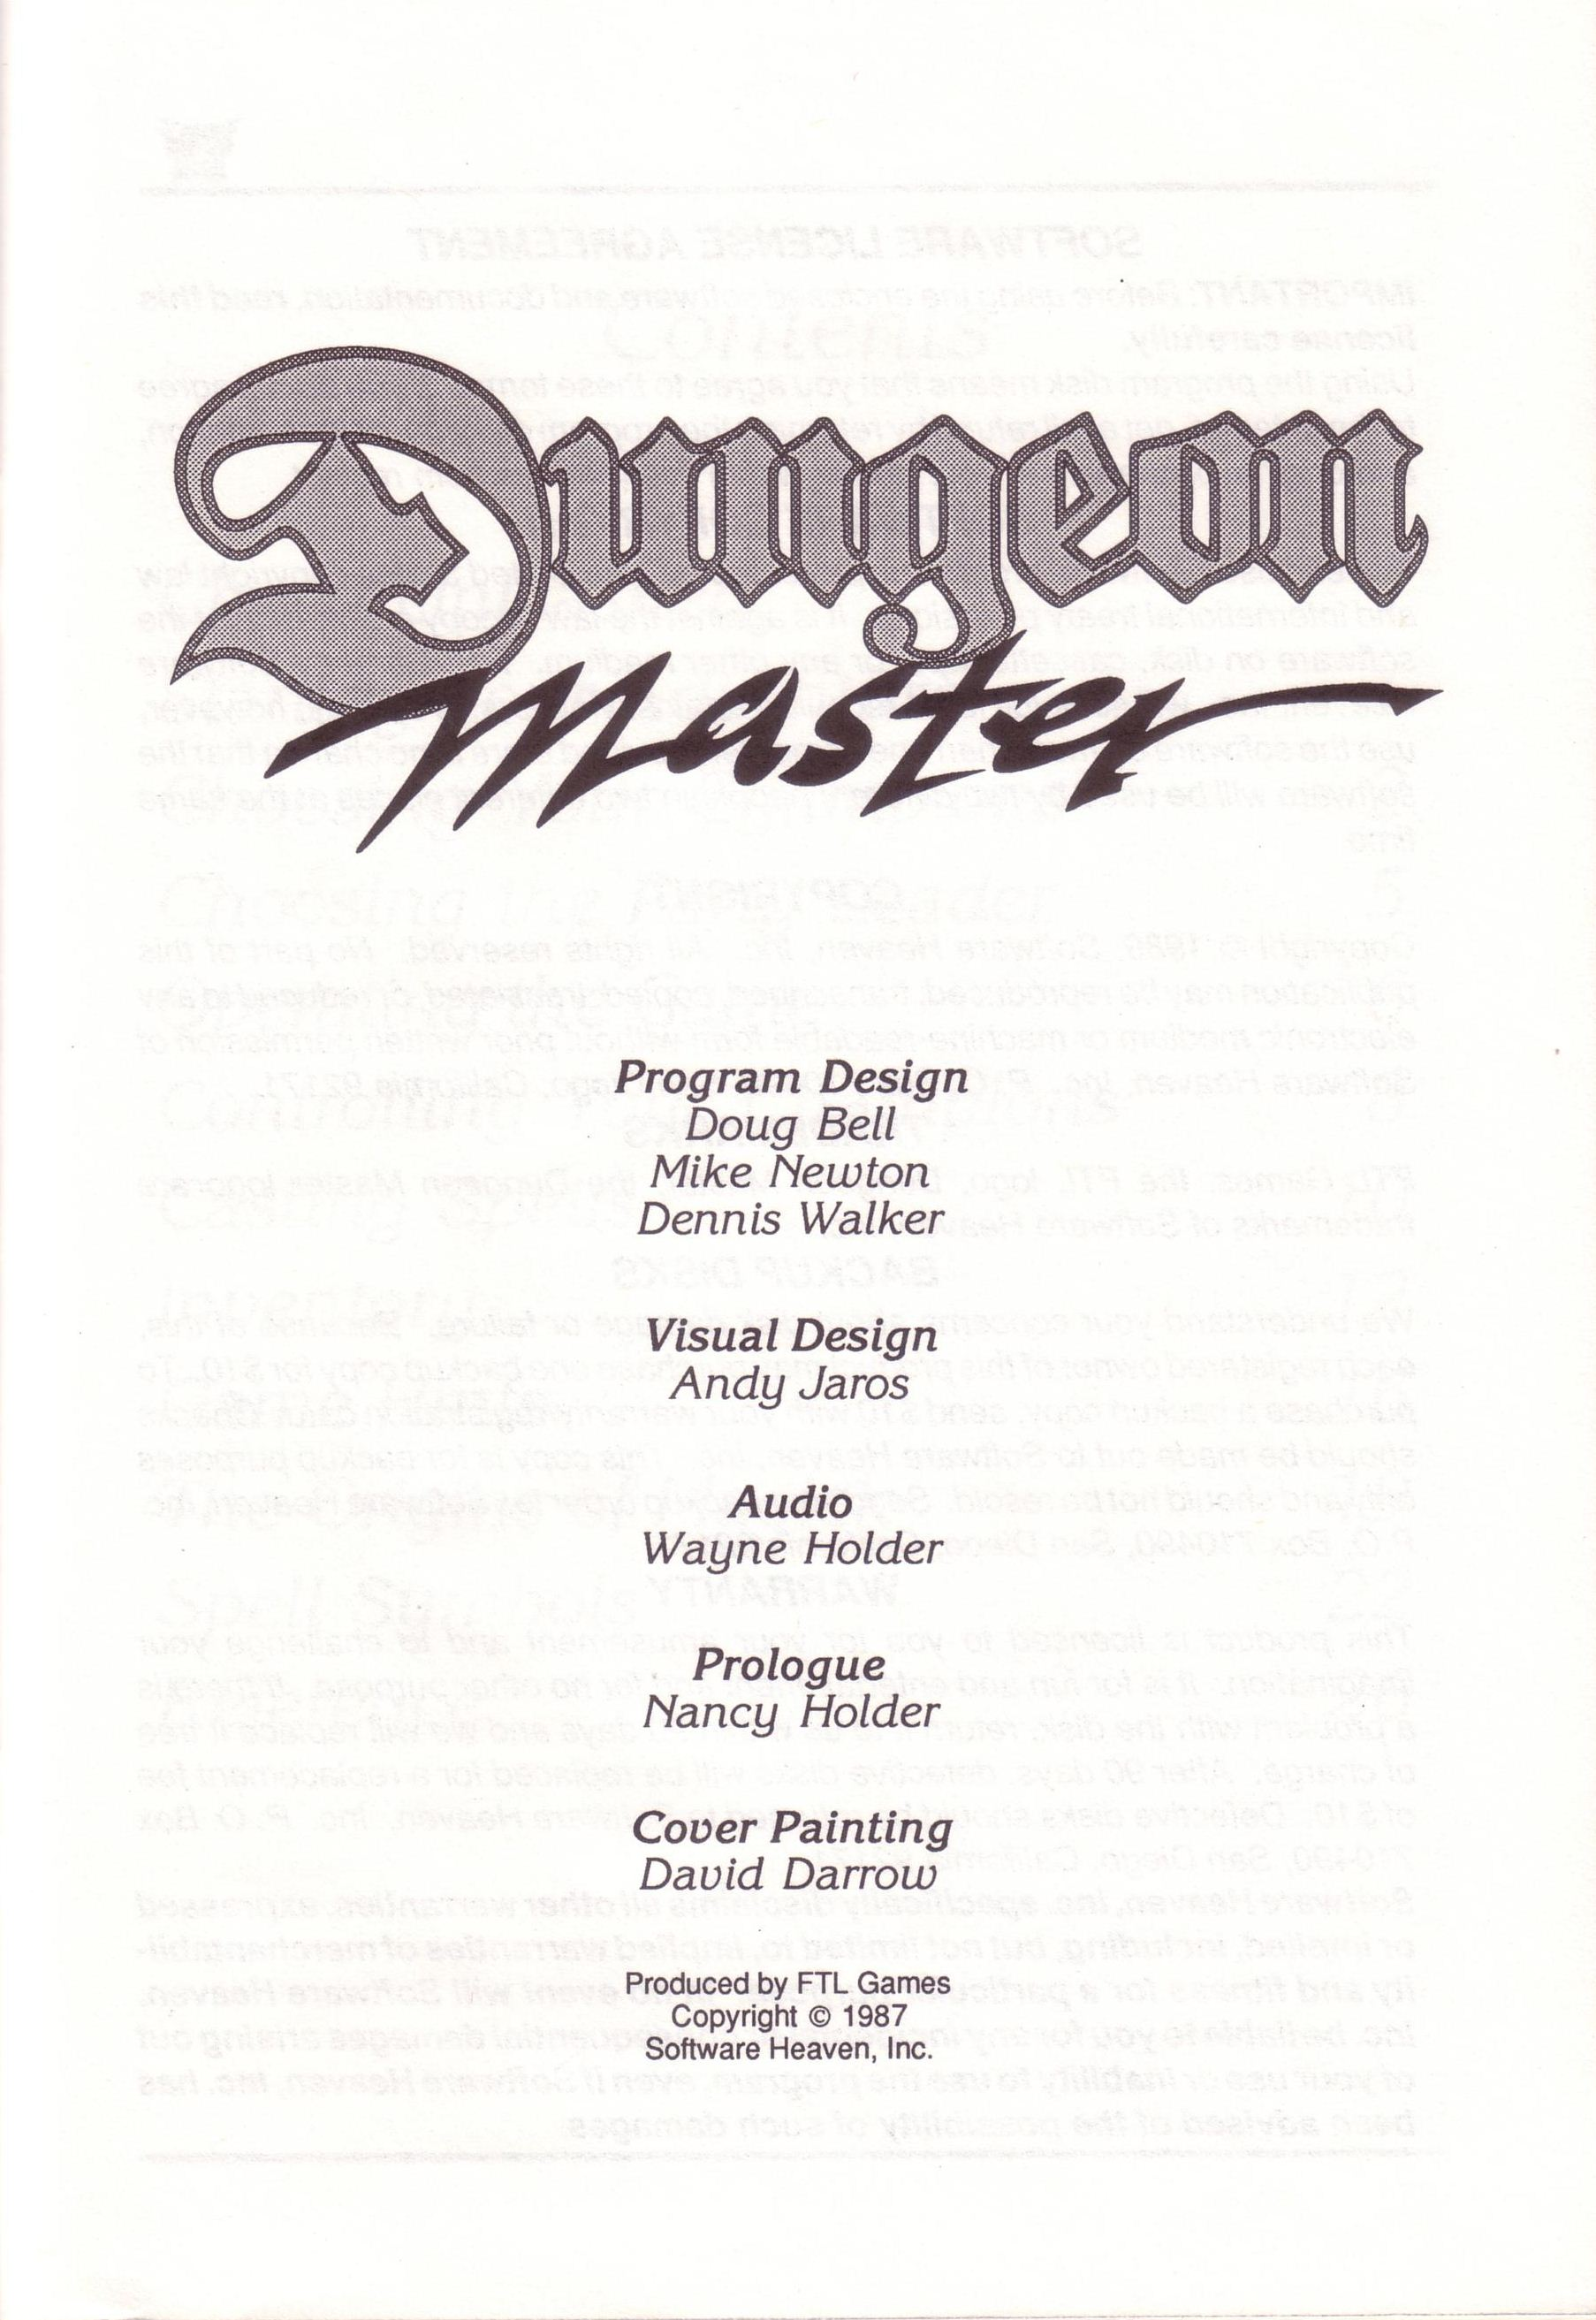 Dungeon Master for PC with FTL Sound Adapter (US Release) - Manual Page 03